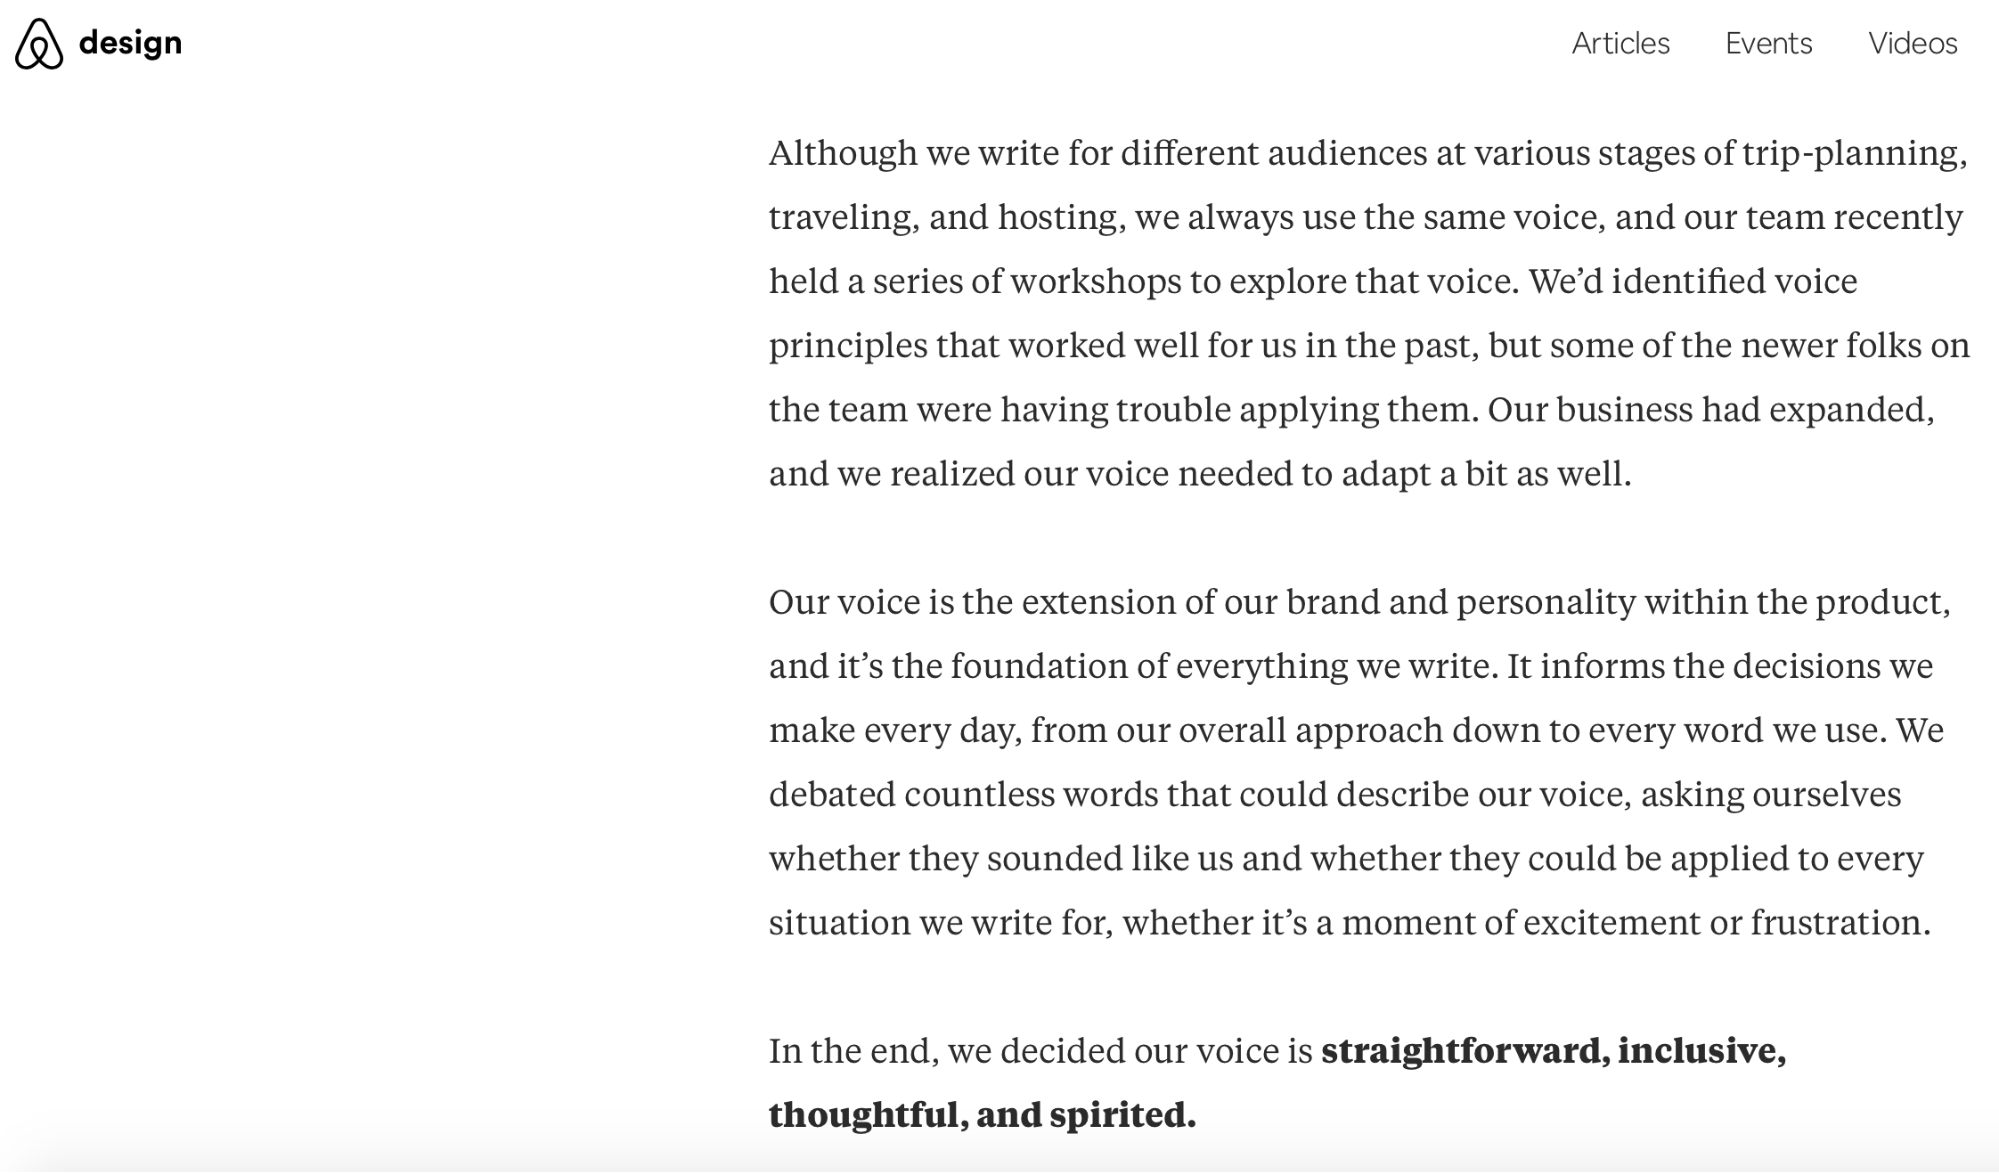 Airbnb tone of voice